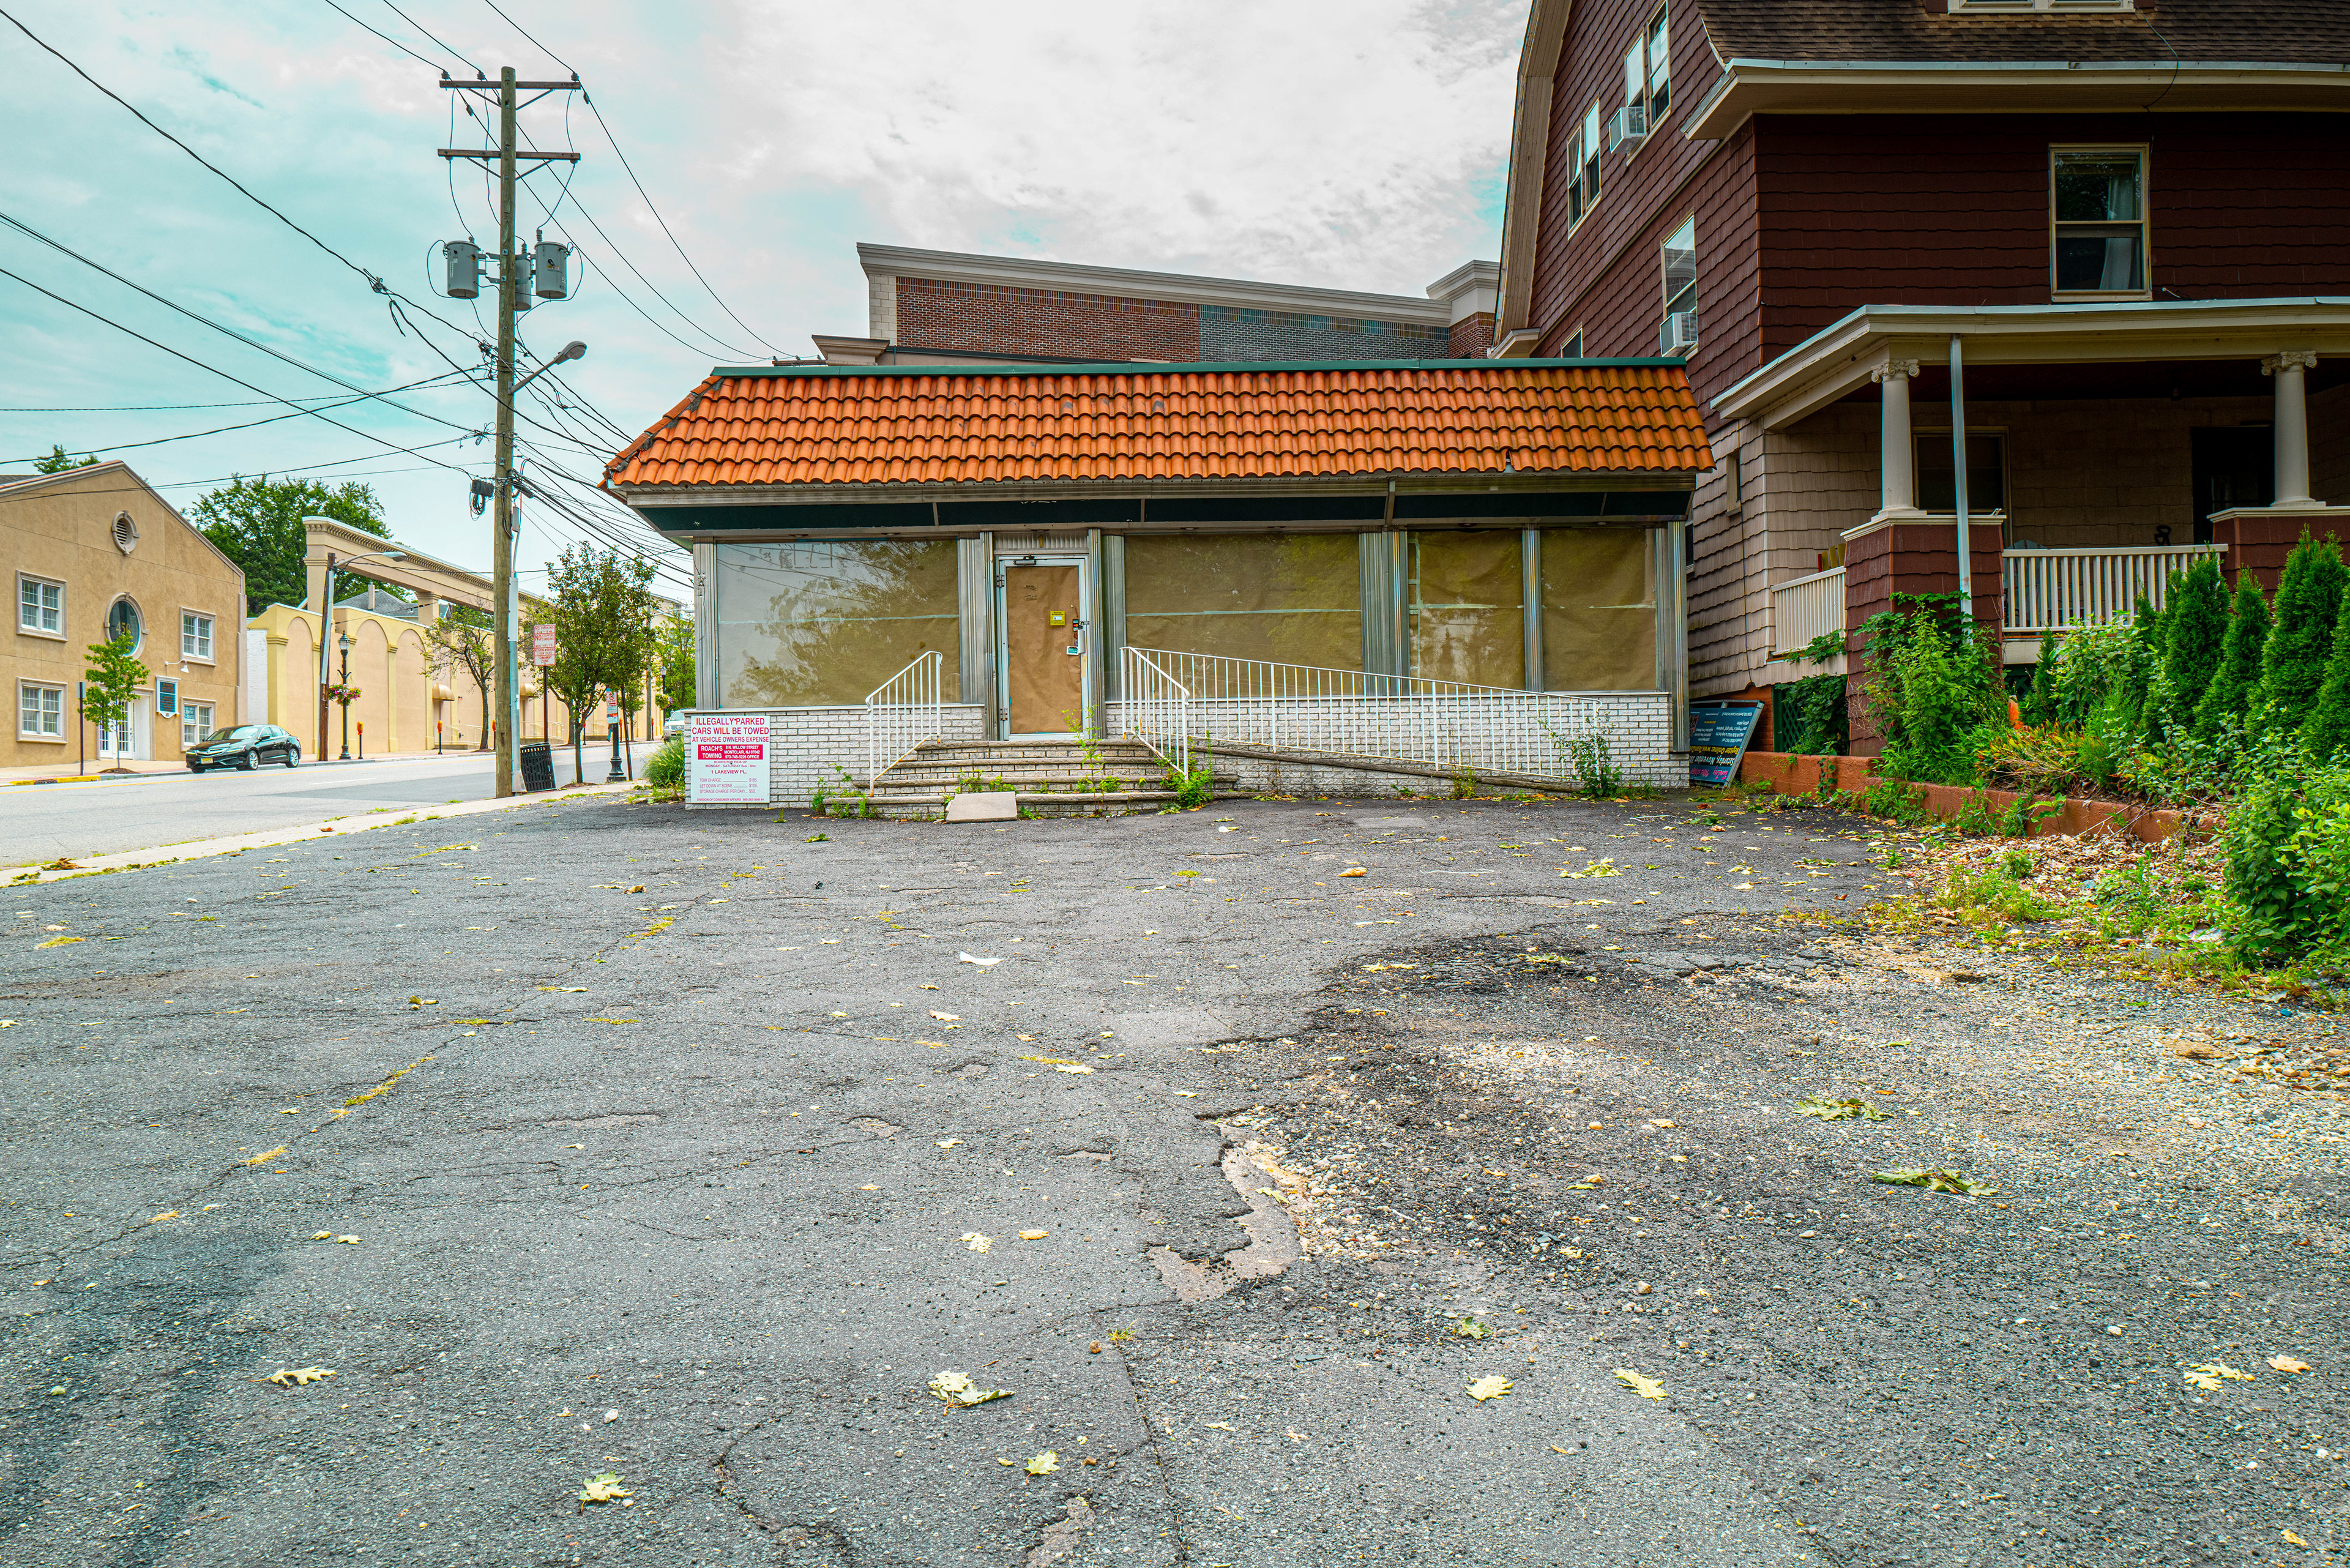 Steven Kushner Photography - Suburban Decay